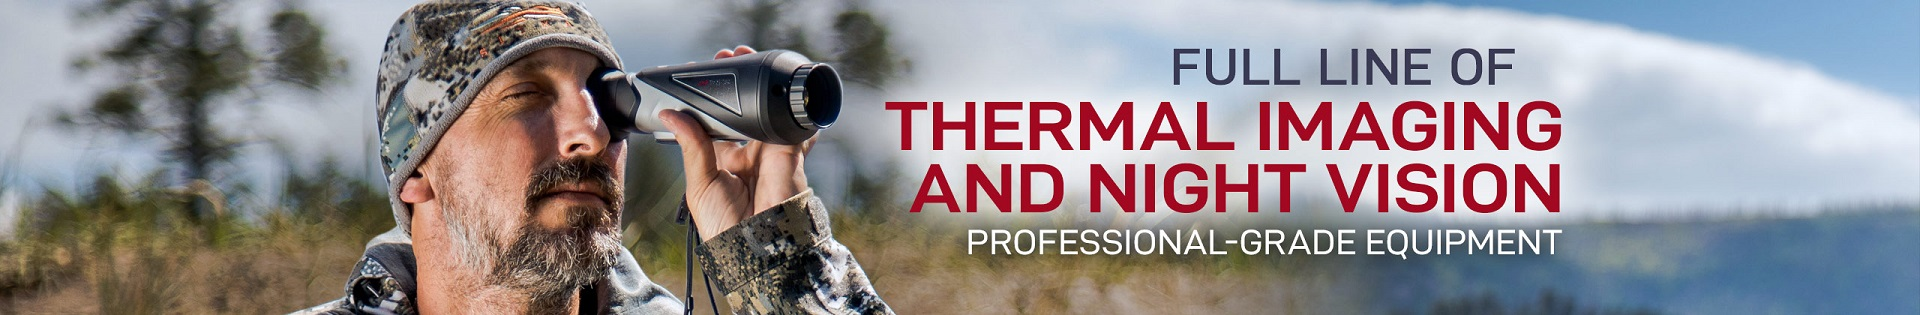 Full line of thermal imaging and night vision